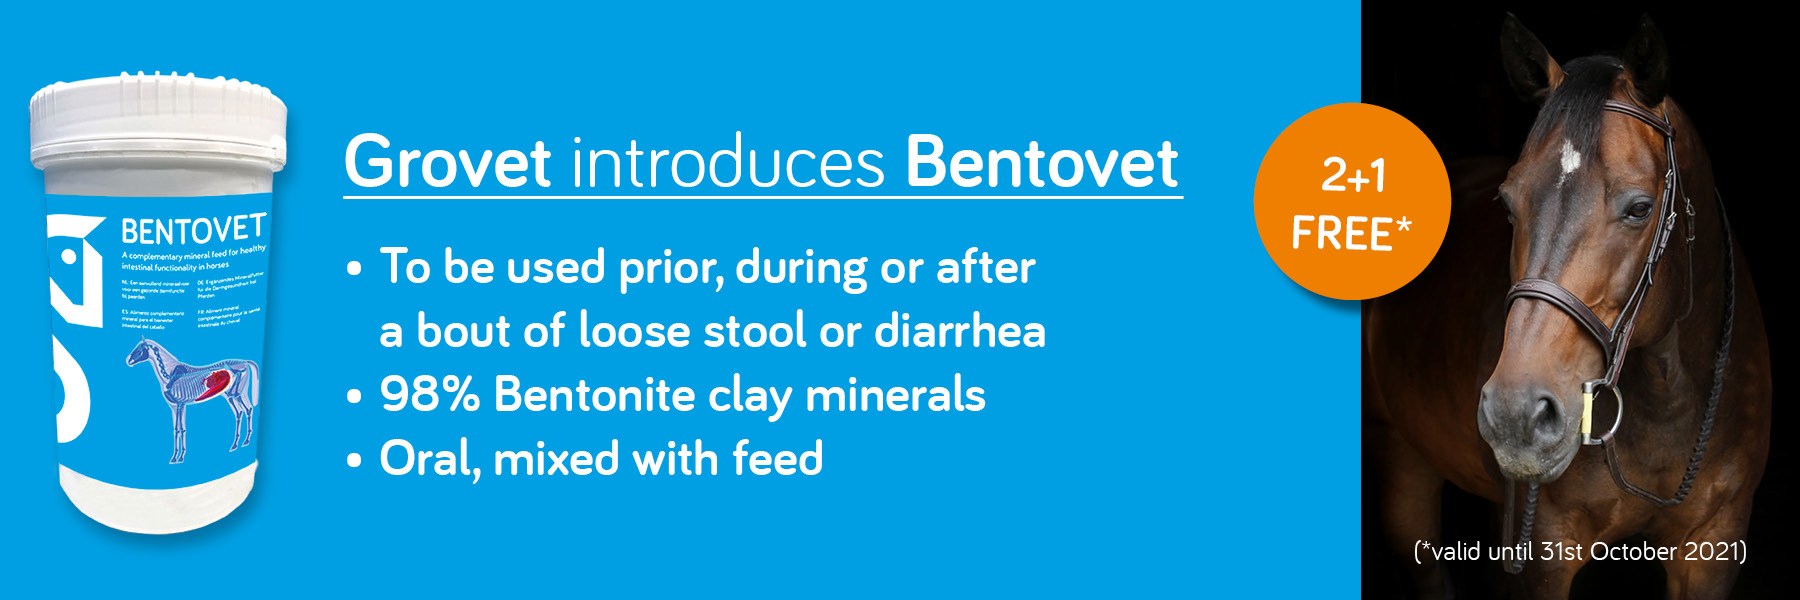 Bentovet, to be used prior, during or after a bout of loose stool or diarrhea